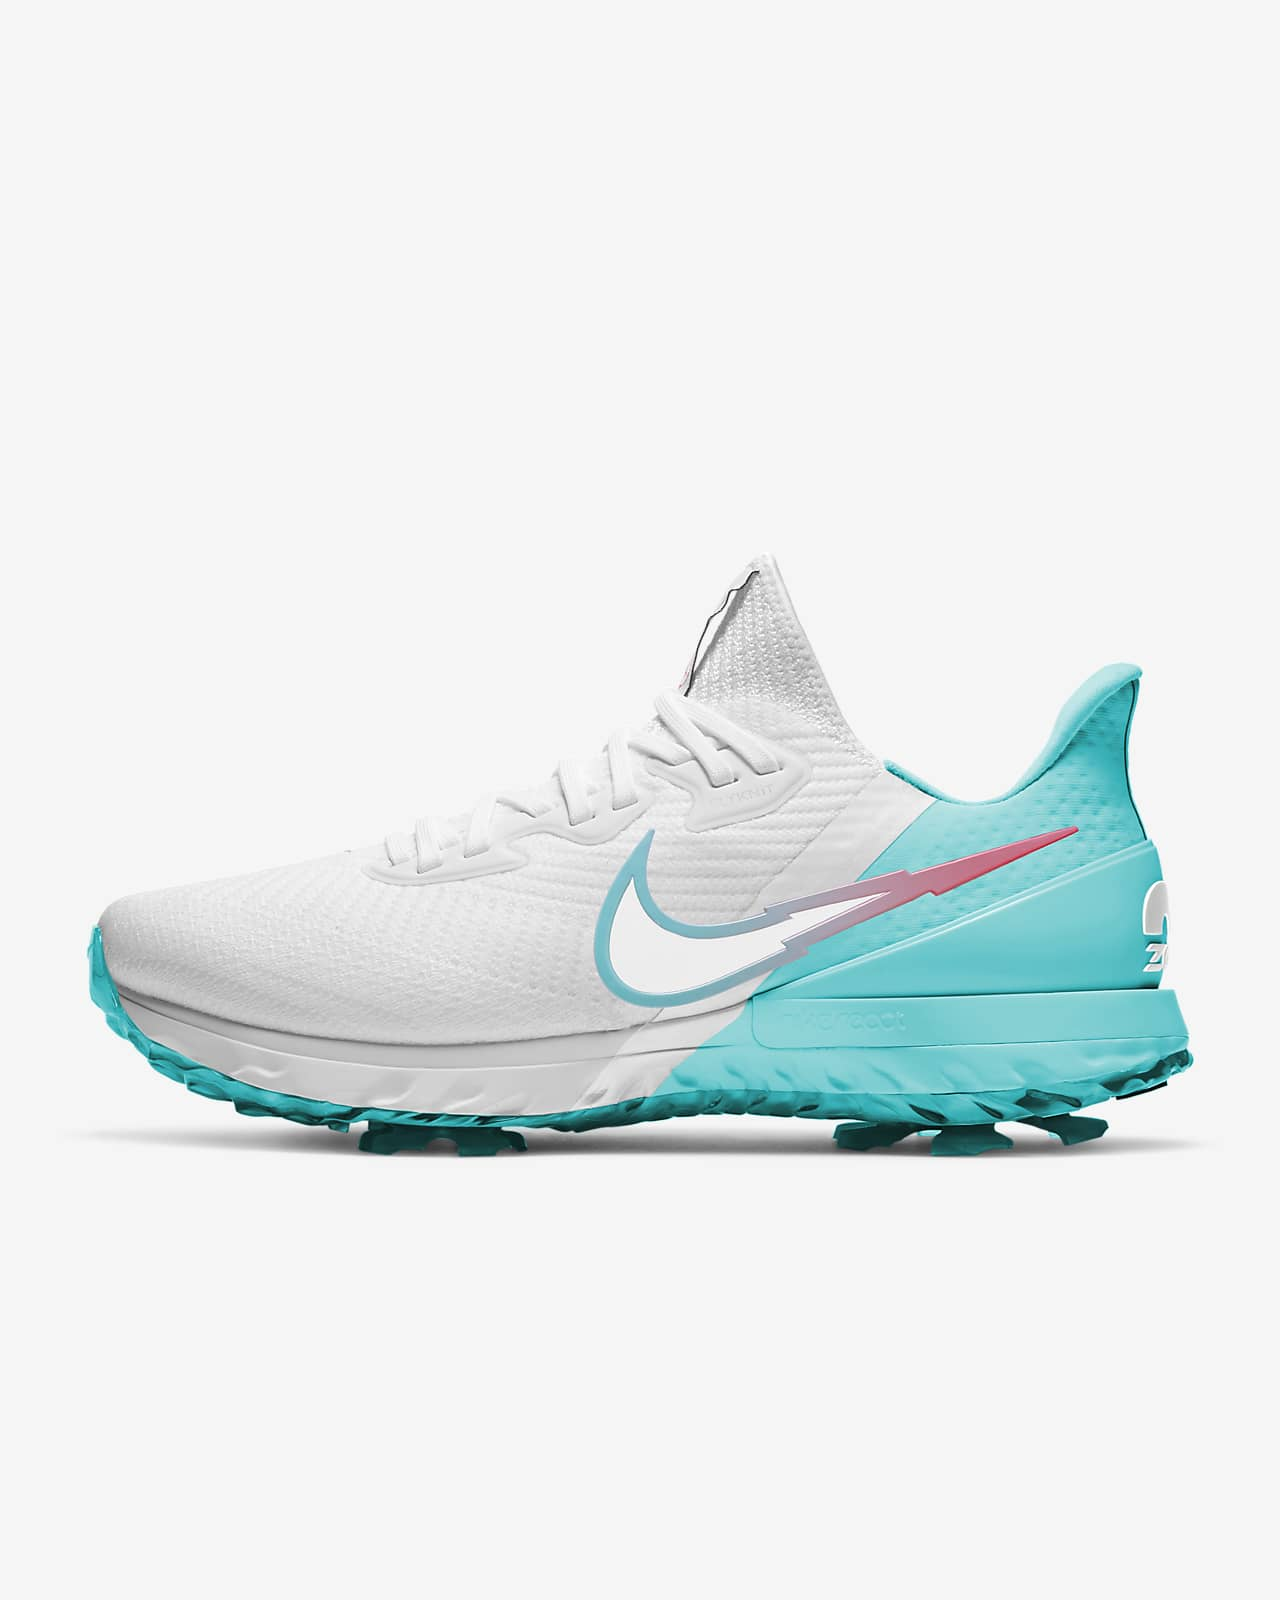 Nike Air Zoom Infinity Tour Golf Shoes (Wide)